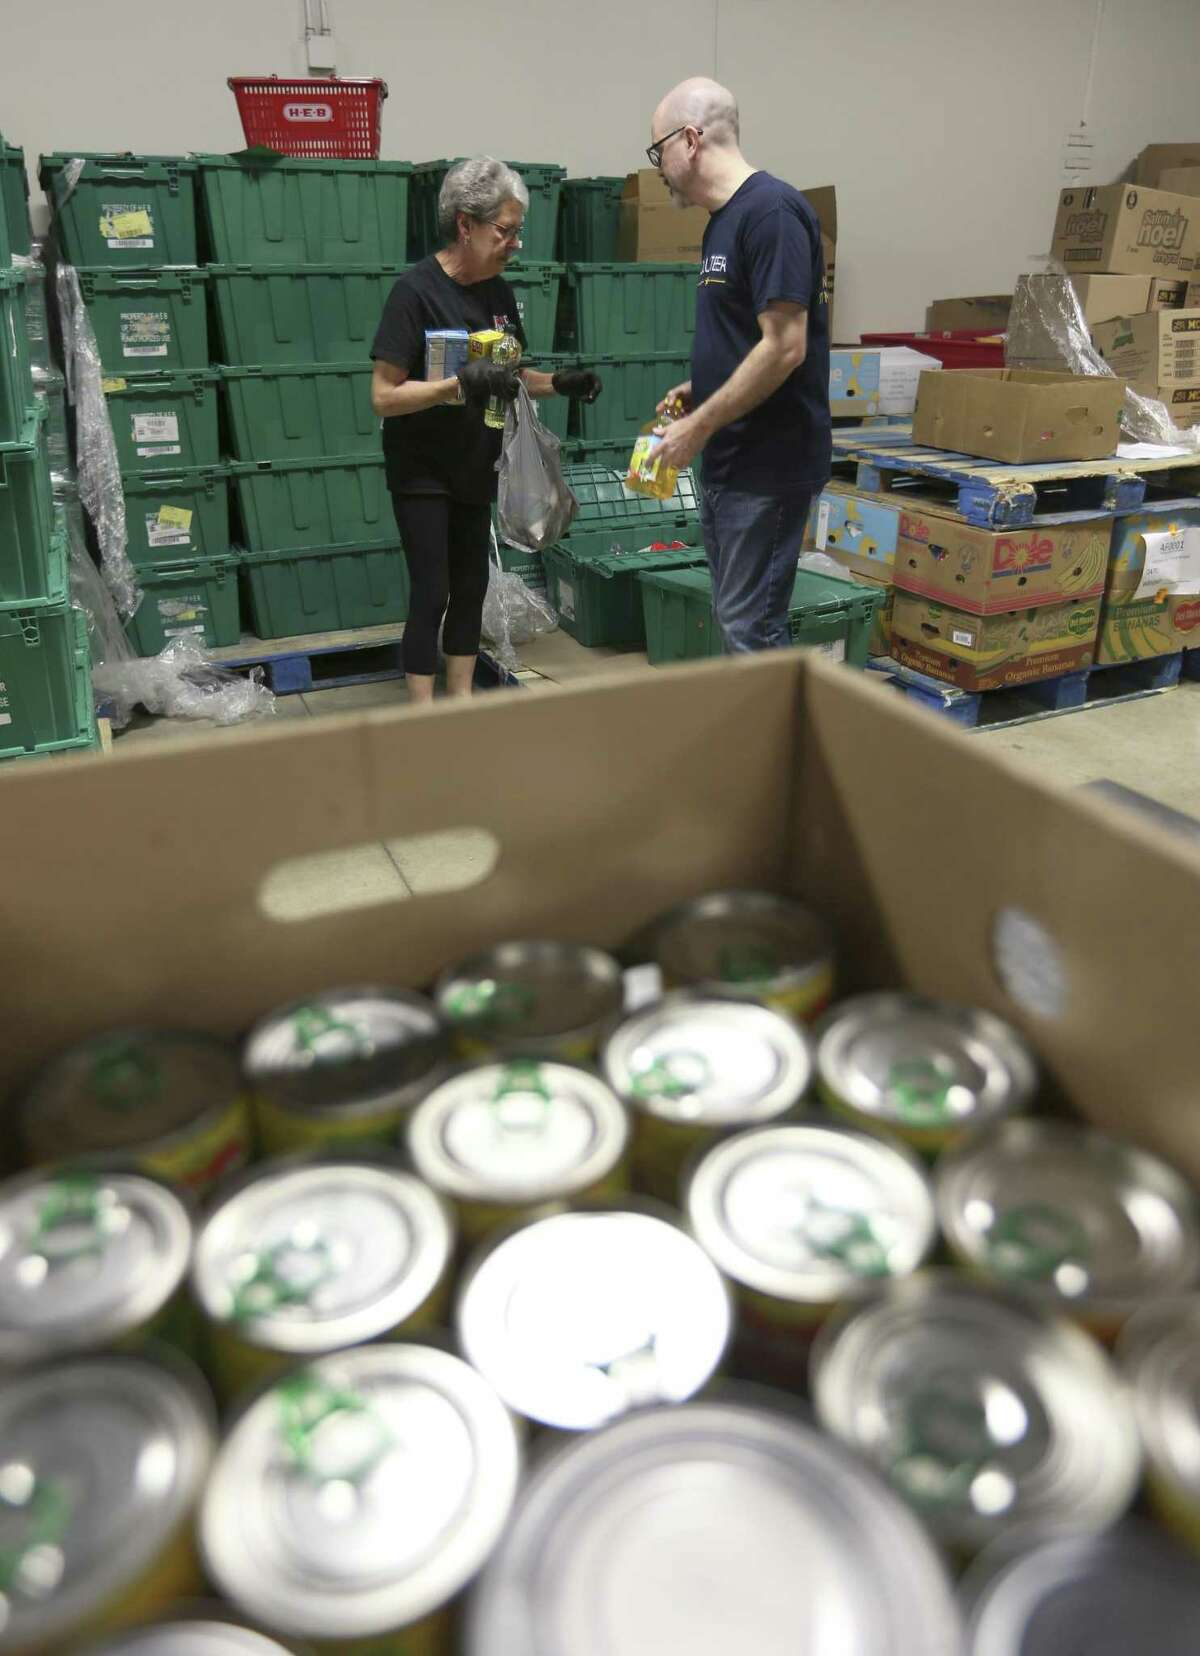 McDaniel helps another volunteer. She says the flexibility makes volunteering at the Food Bank easy.